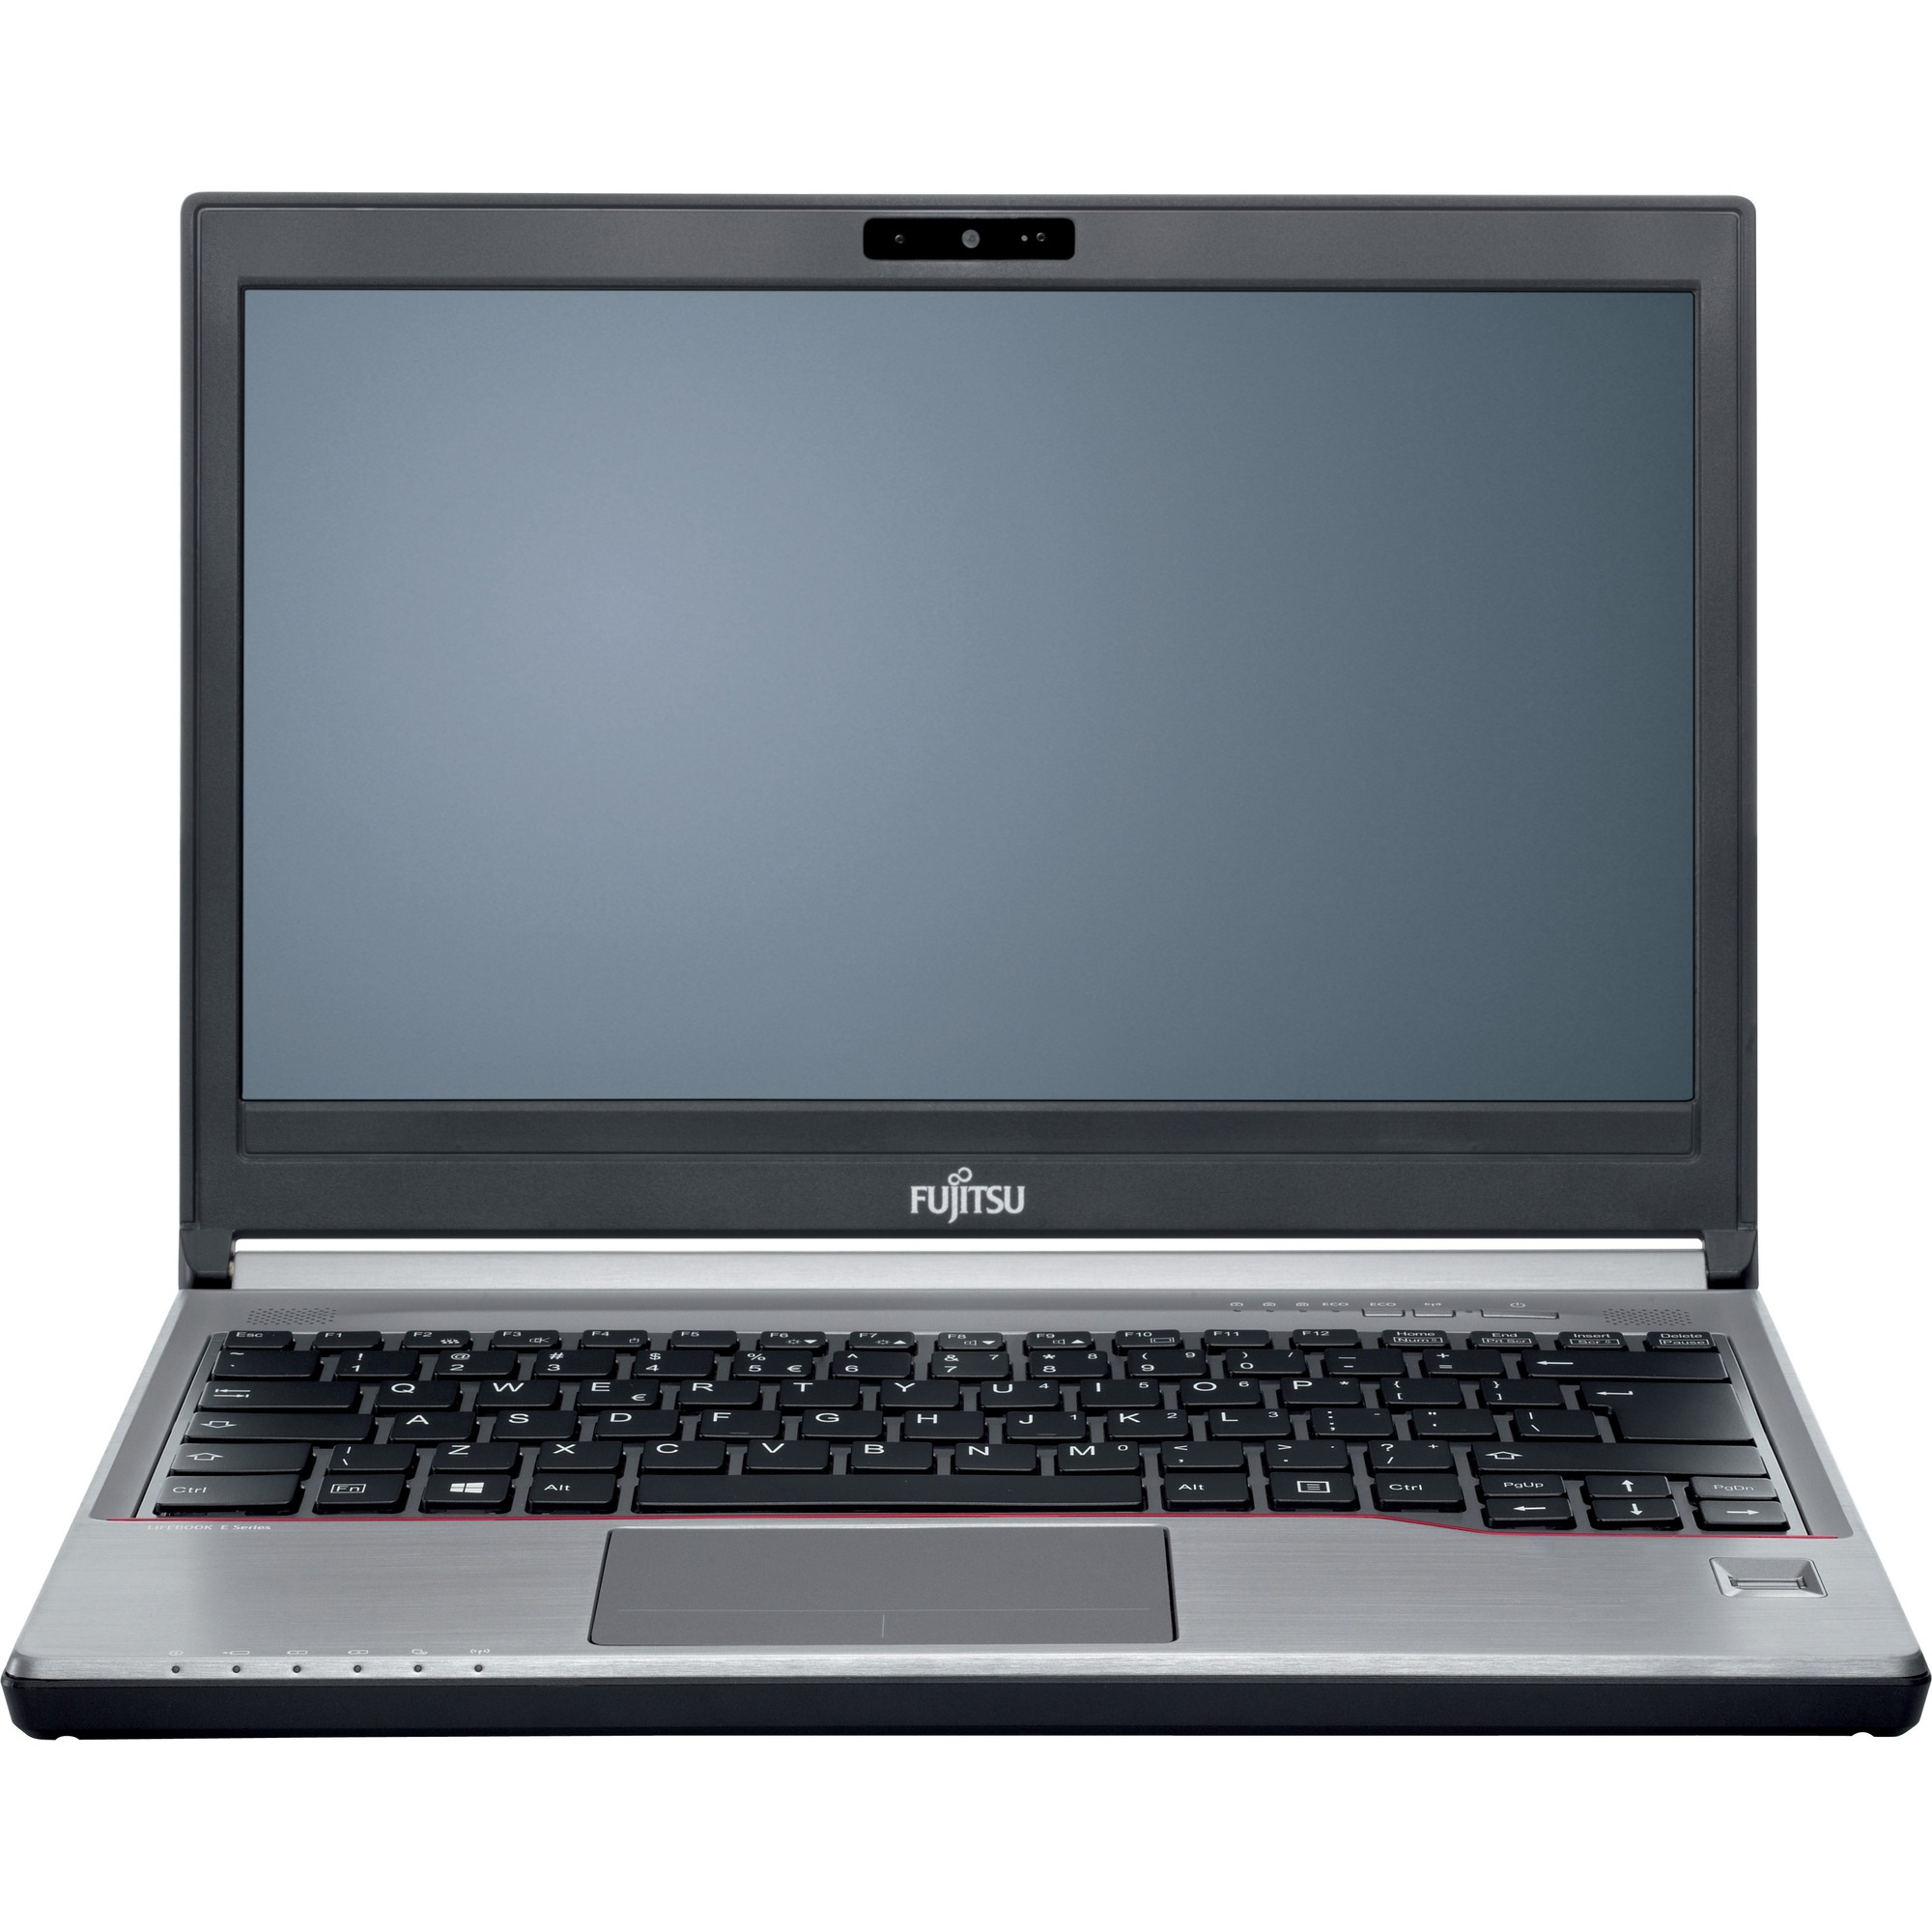 Fujitsu LIFEBOOK E736 33.8 cm 13.3inch LCD Notebook - Intel Core i7 6th Gen i7-6500U Dual-core 2 Core 2.50 GHz - 8 GB DDR4 SDRAM - 512 GB SSD - Windows 10 Pro 64-